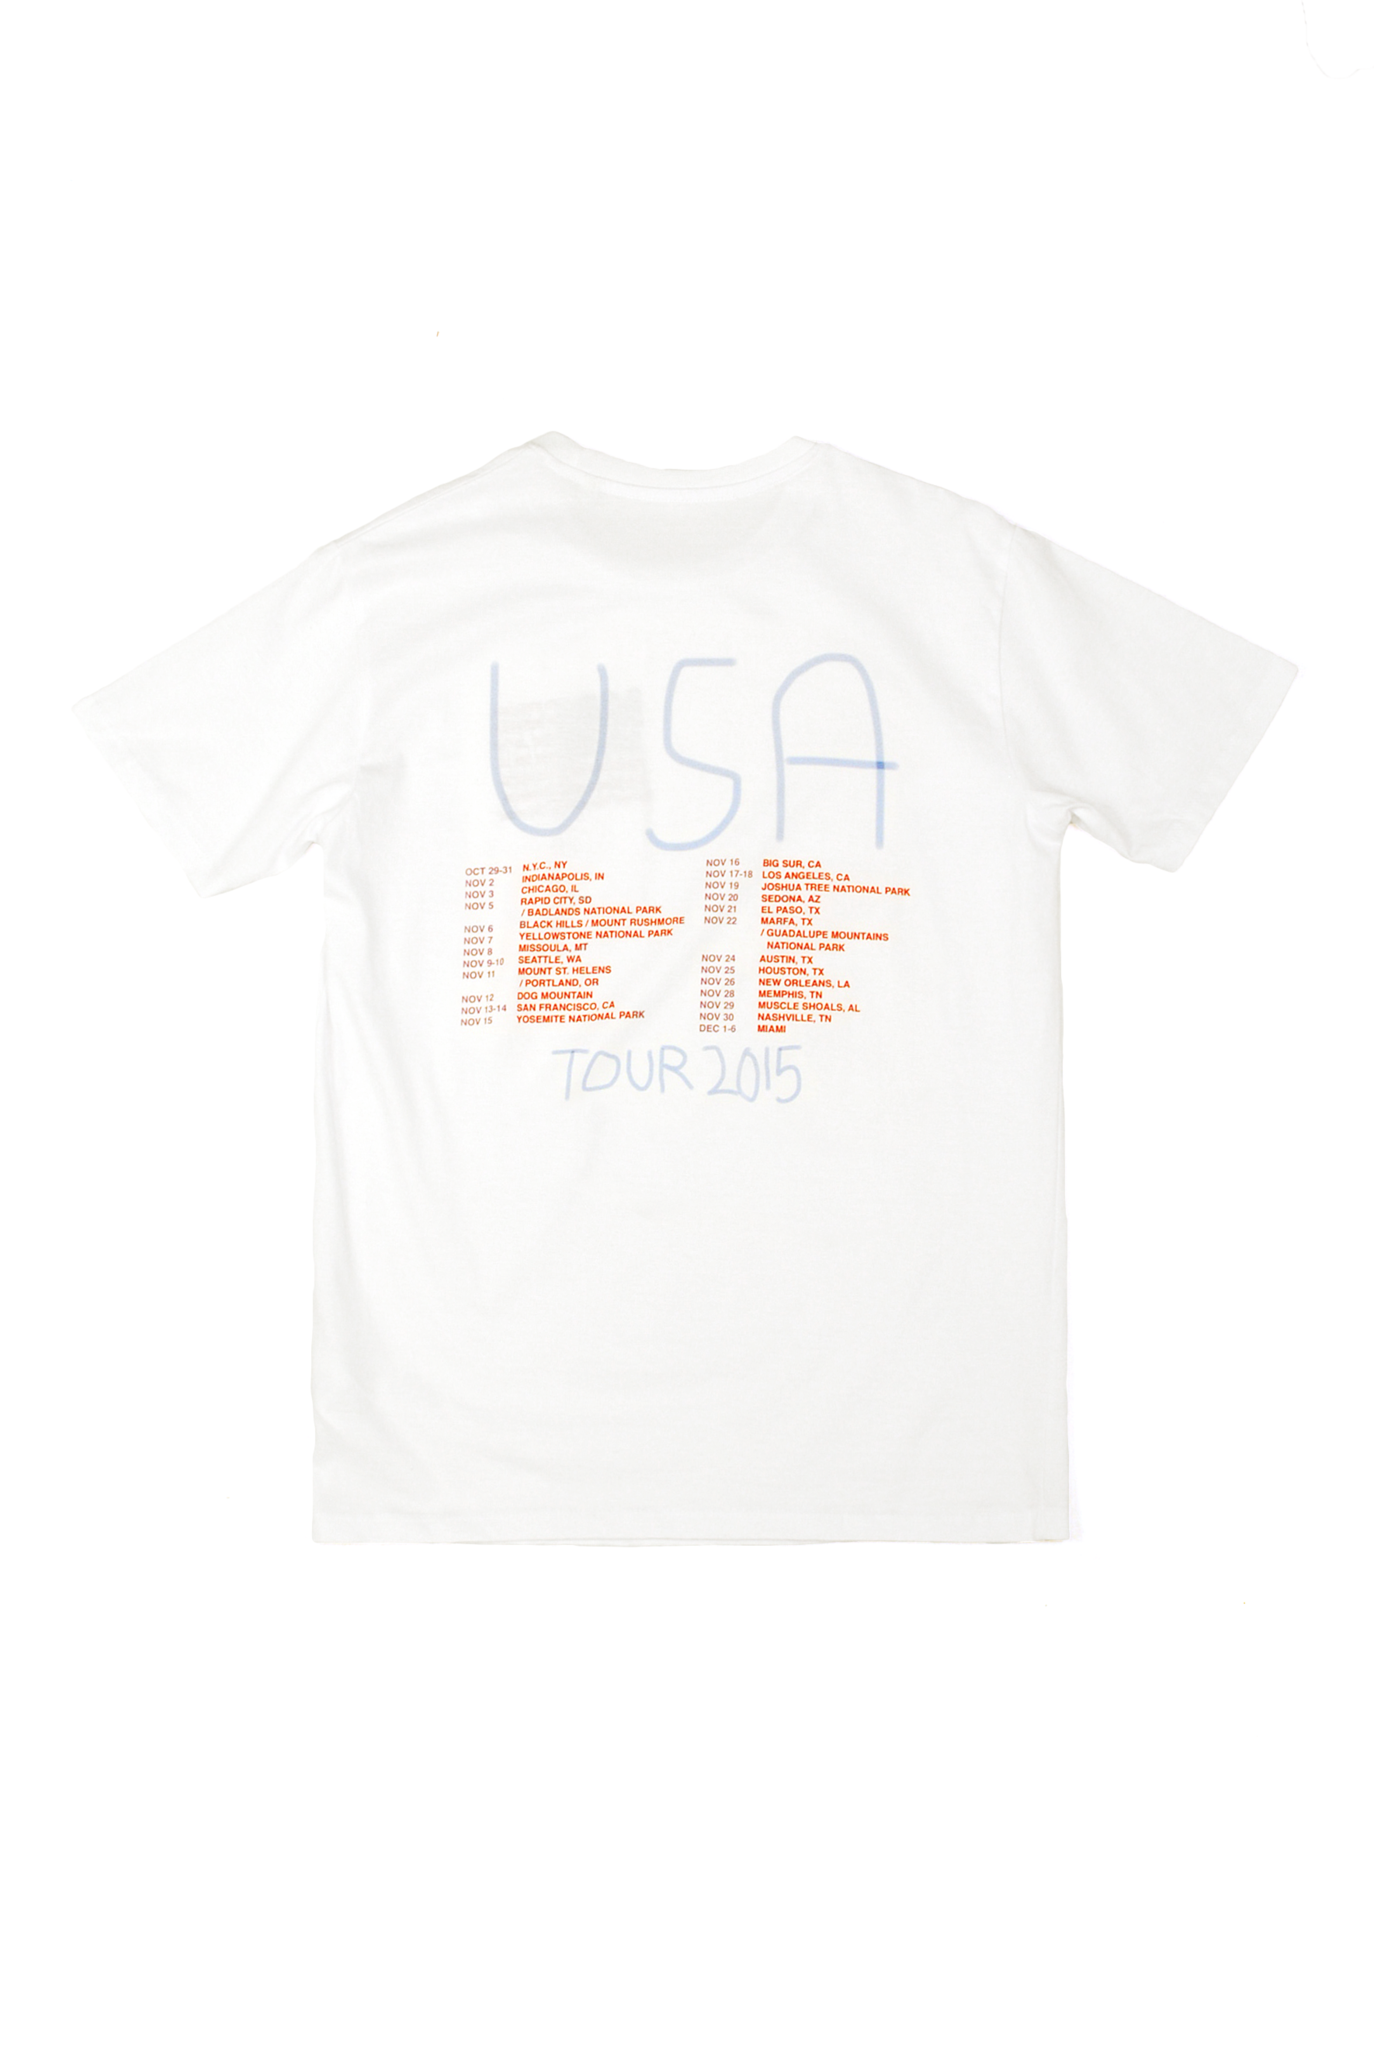 Marfa Journal Tour T-shirt #3